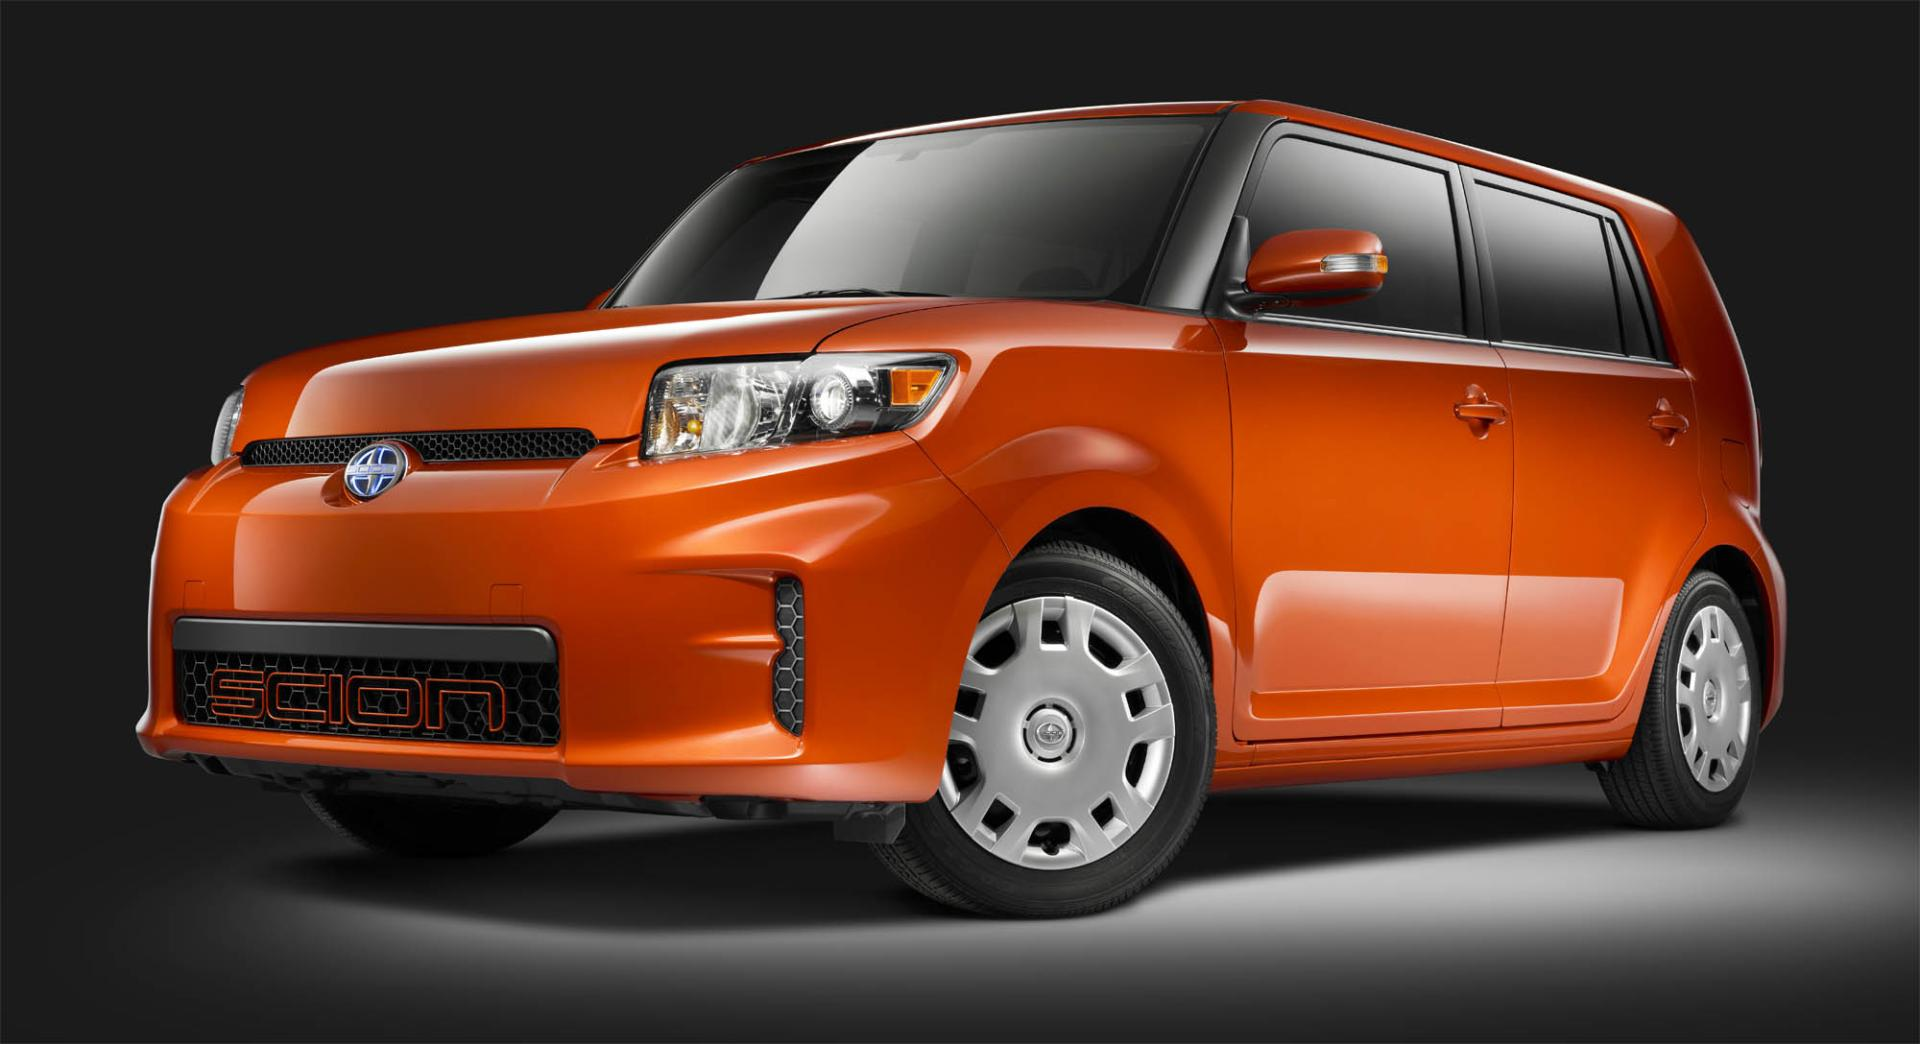 2012 scion xb release series 9 0. Black Bedroom Furniture Sets. Home Design Ideas